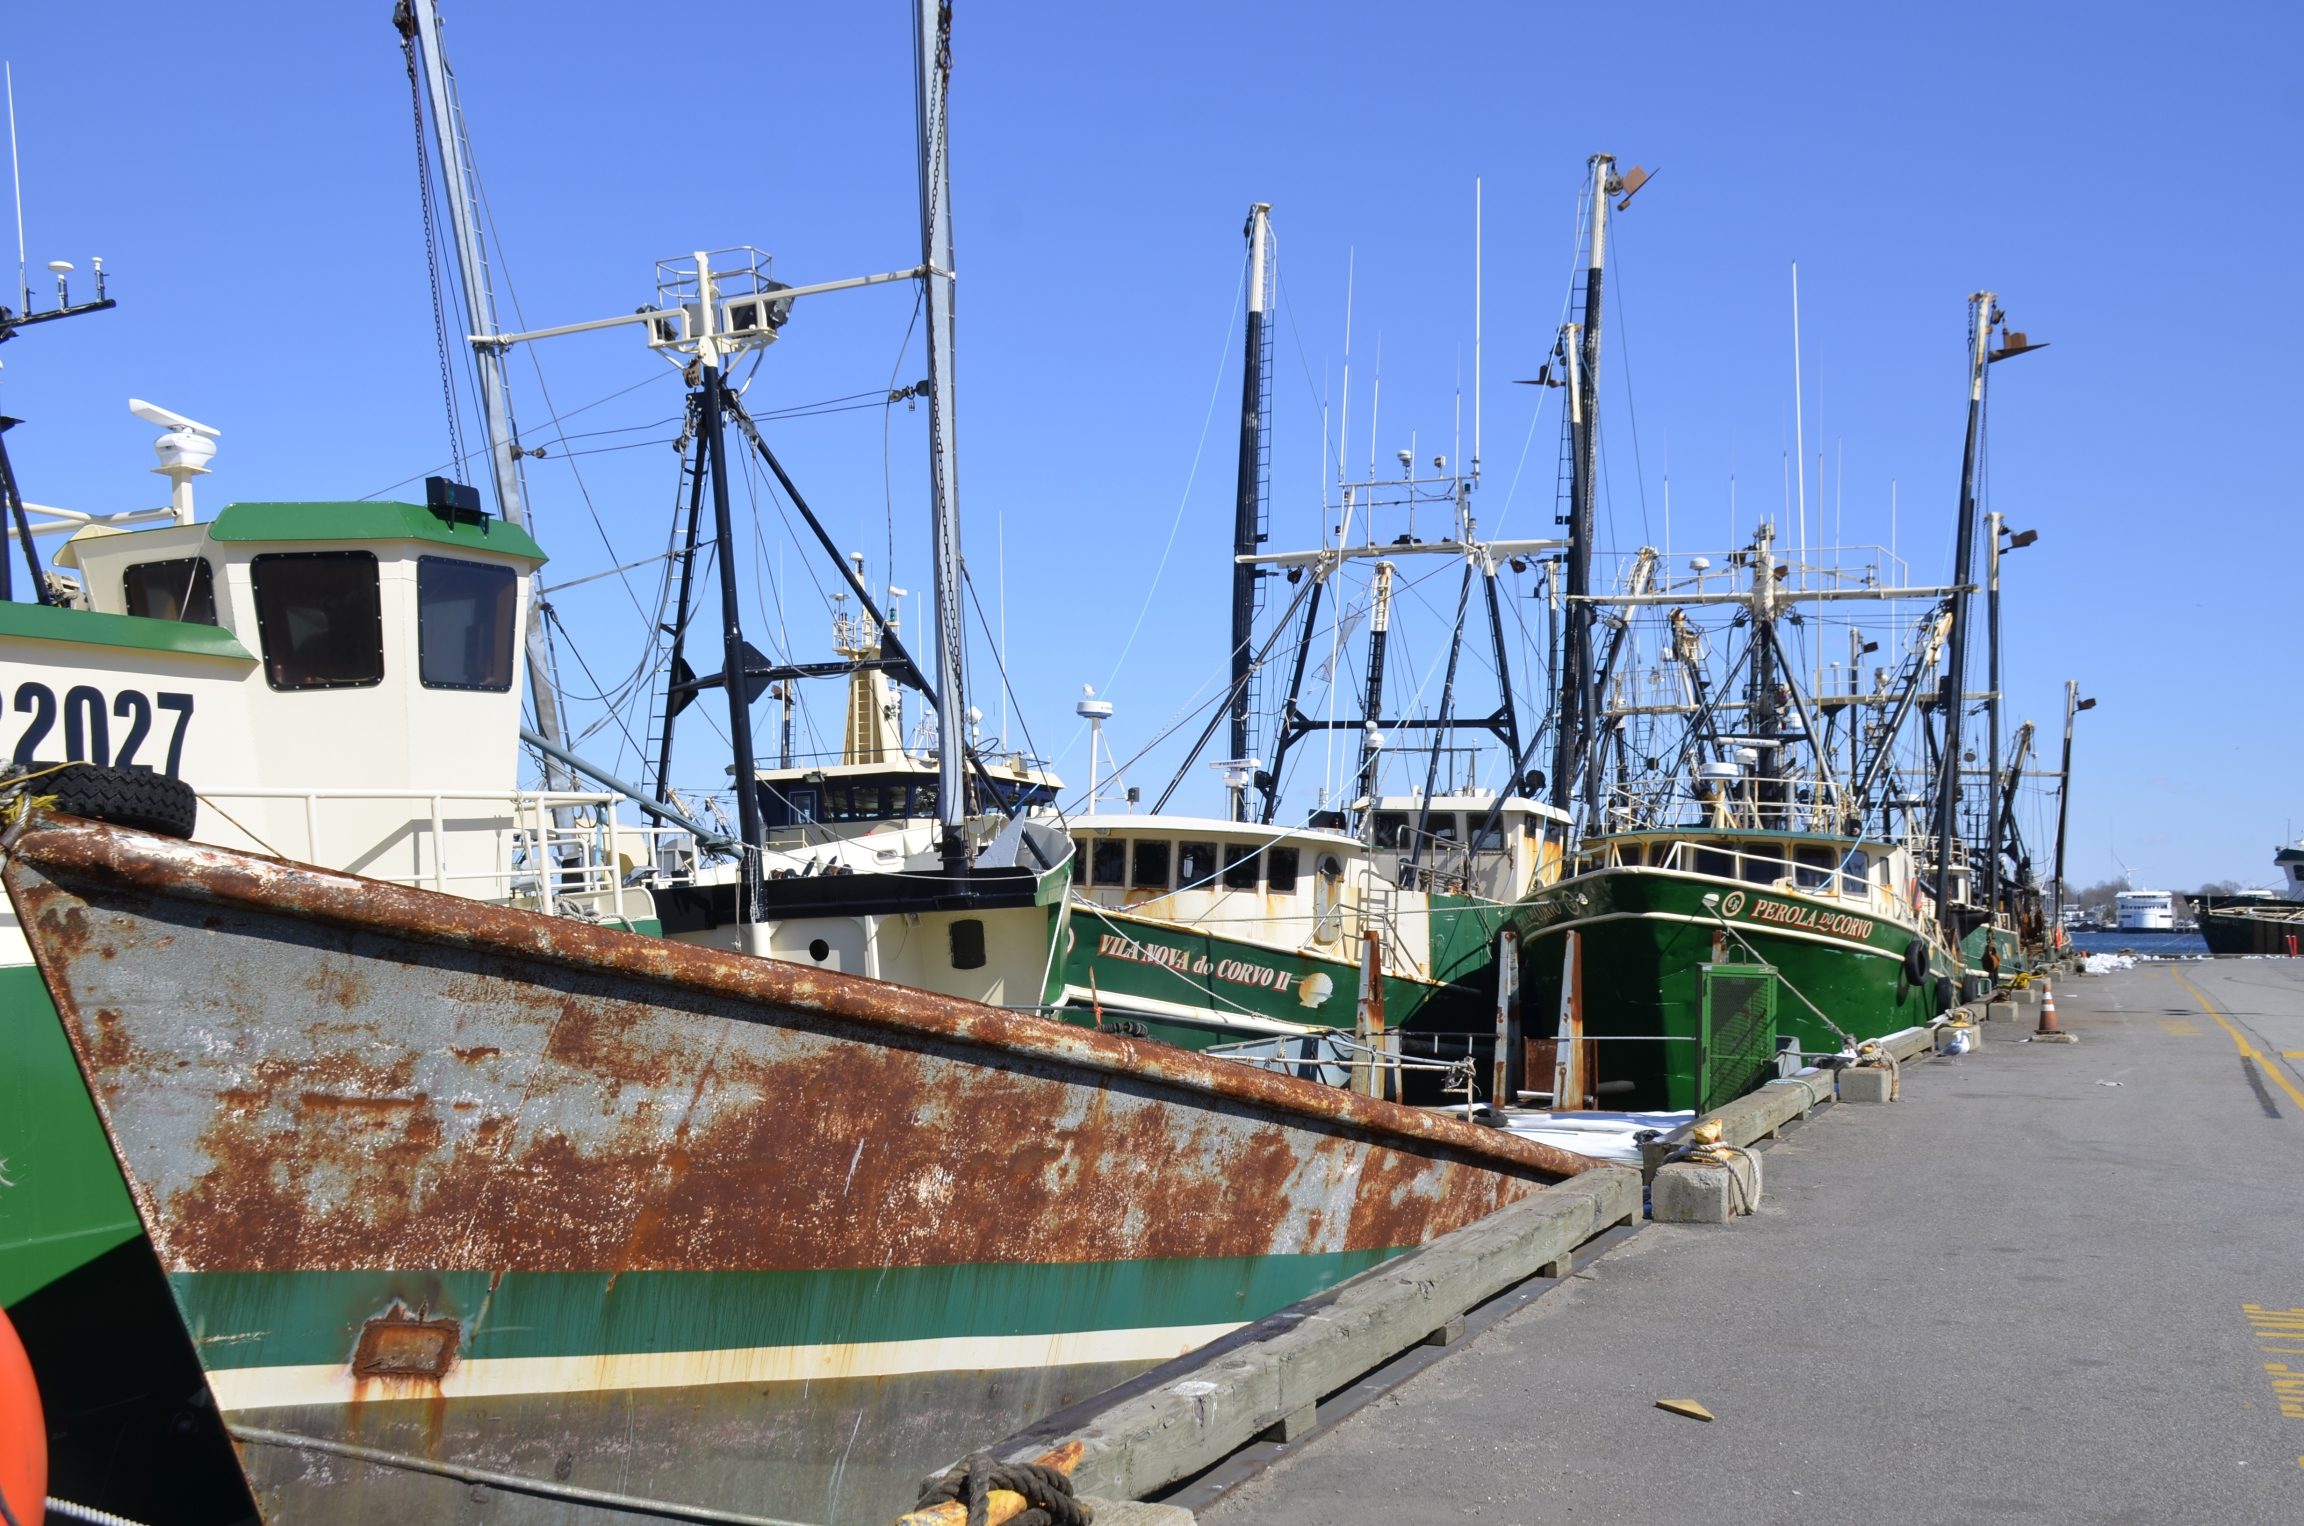 New Bedford, Massachusetts has held the title as the nation's most valuable commercial fishing port for nearly two decades.